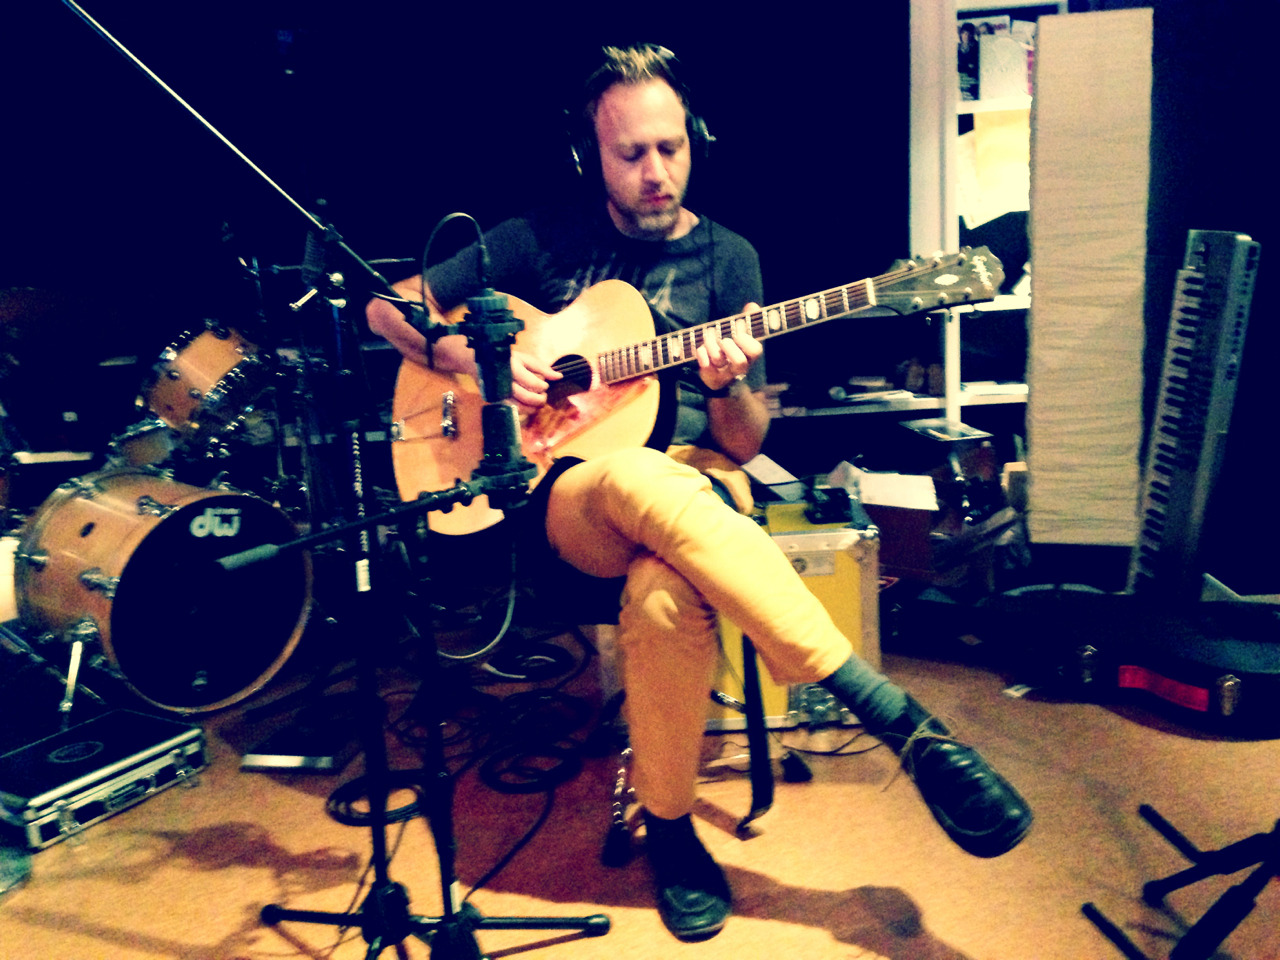 Recording a bit of acoustic guitar for the final cue of Don Jon's Addiction in the REC Room.